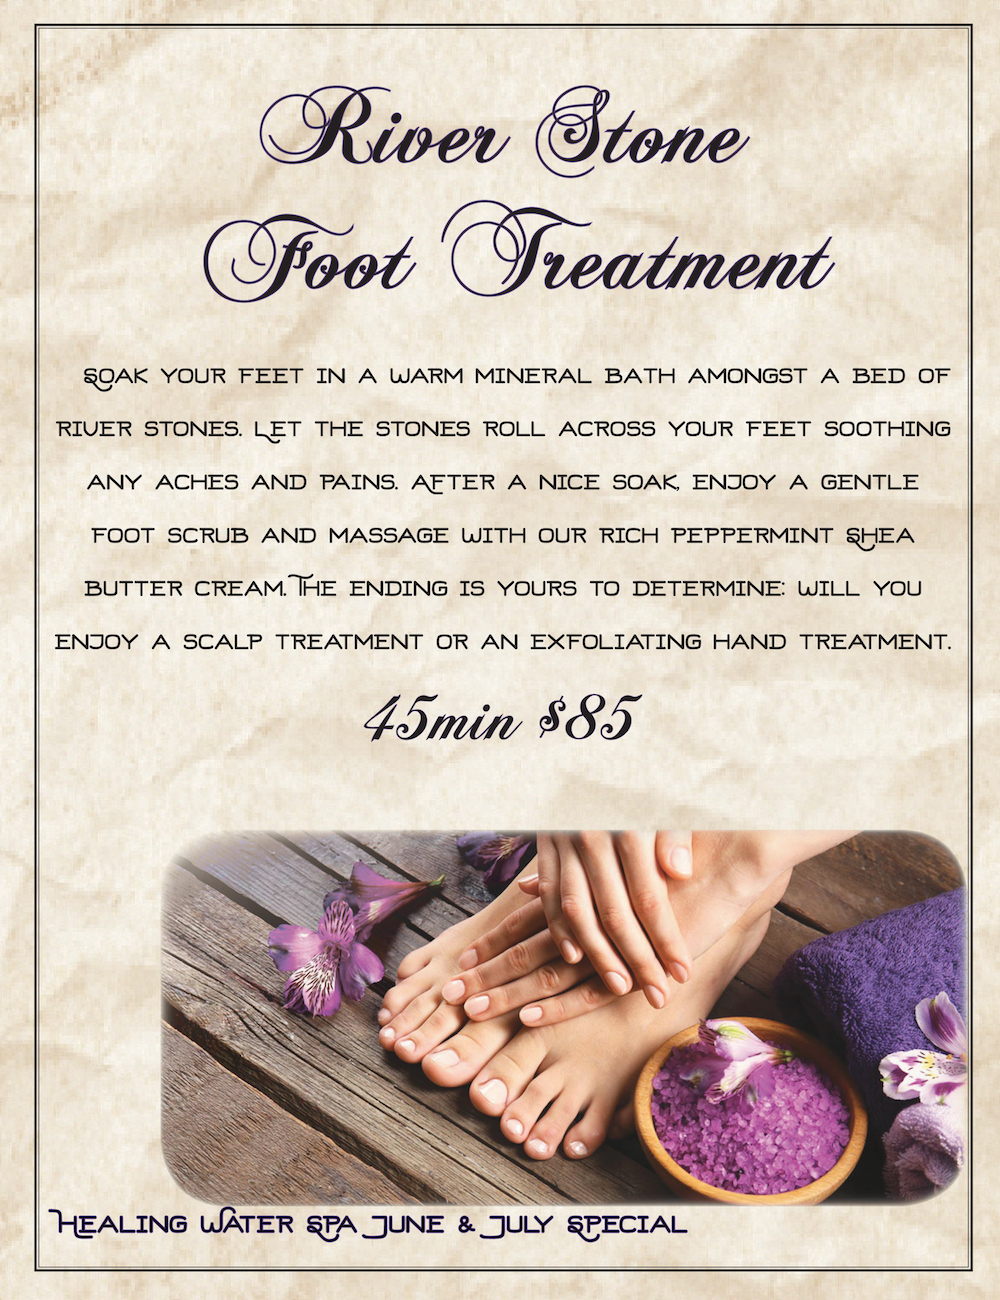 June & July Foot Treatment Special